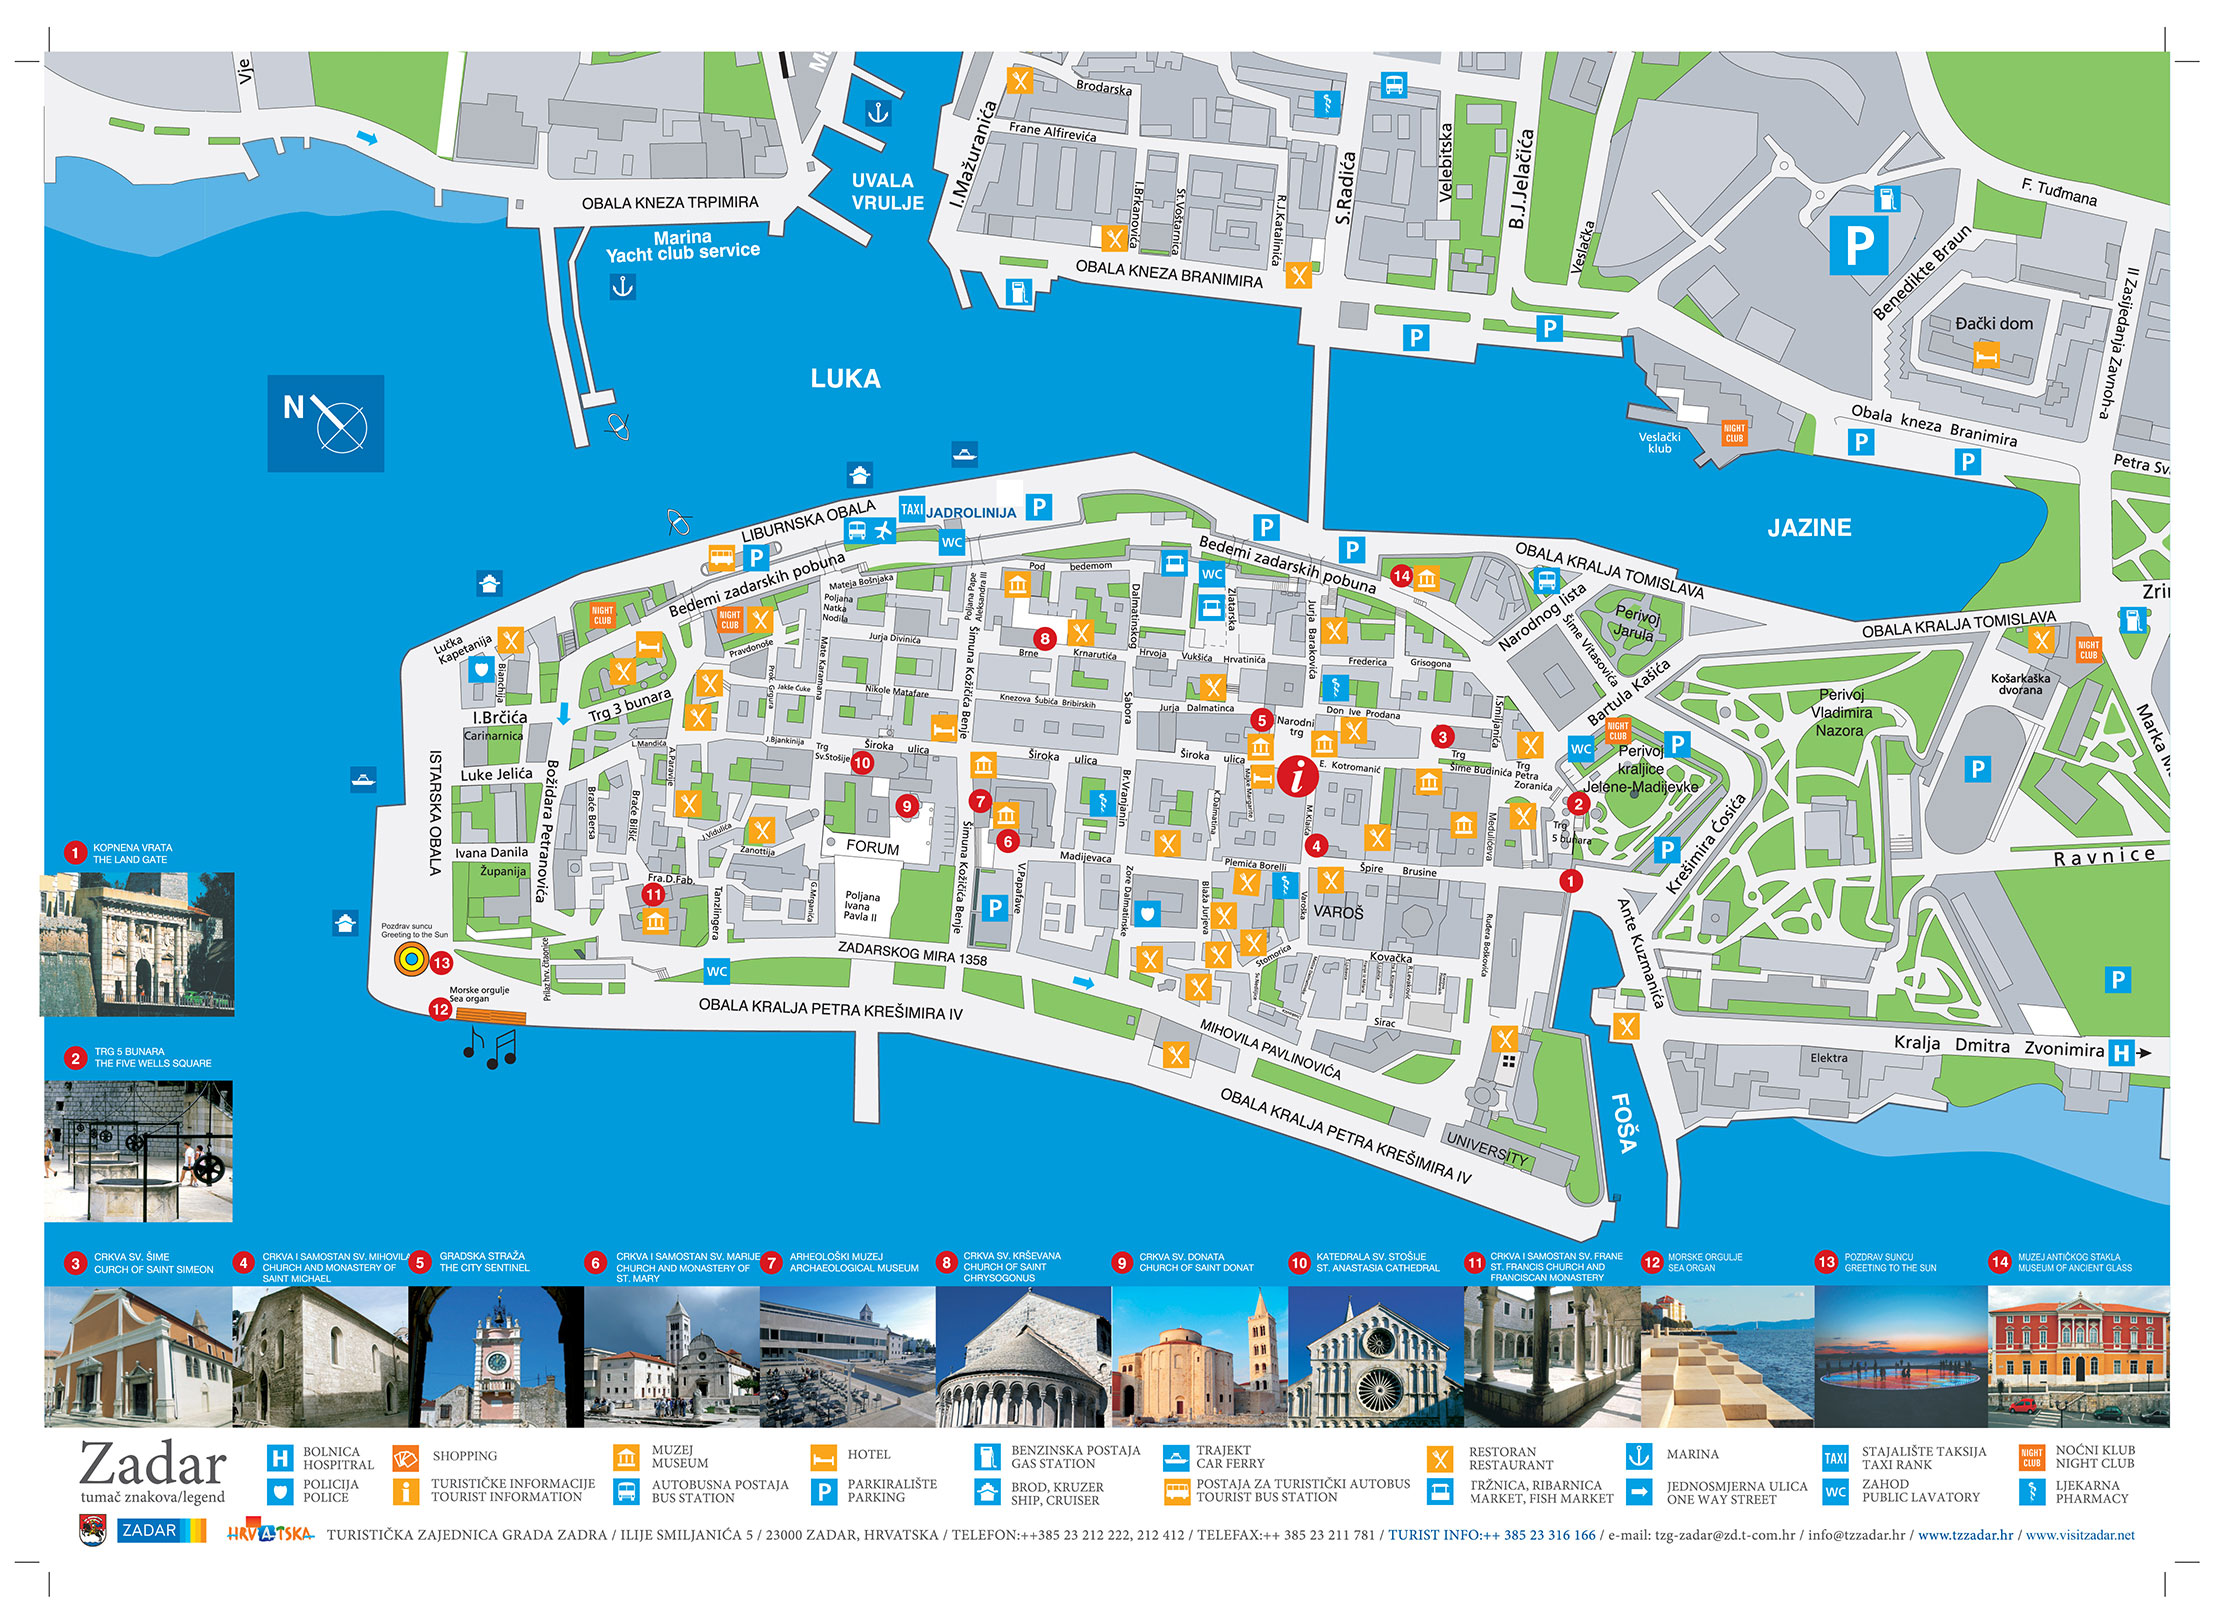 Mecame 2018 zadar old city map by zadar tourist board publicscrutiny Images